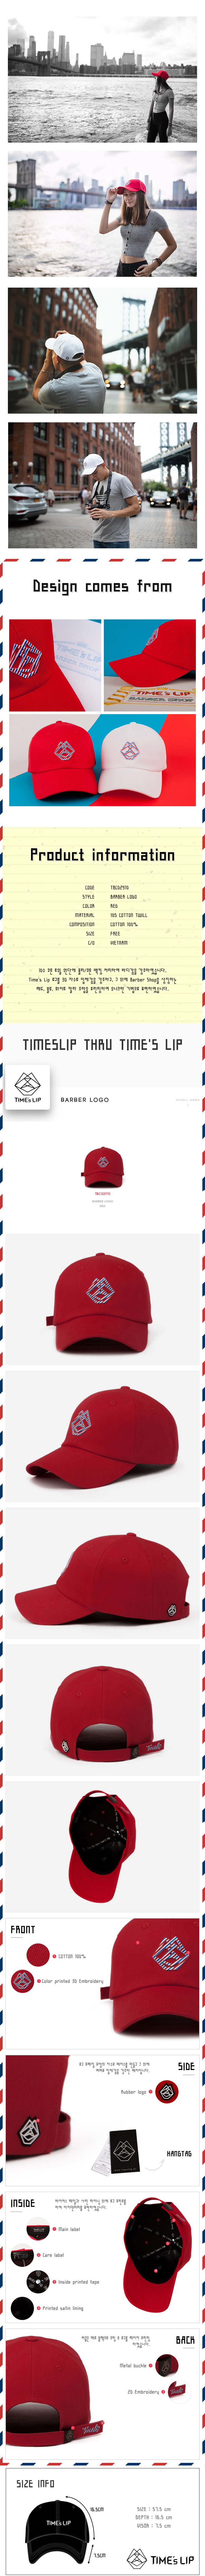 TBC02910-BARBER-LOGO-RED_Product.jpg